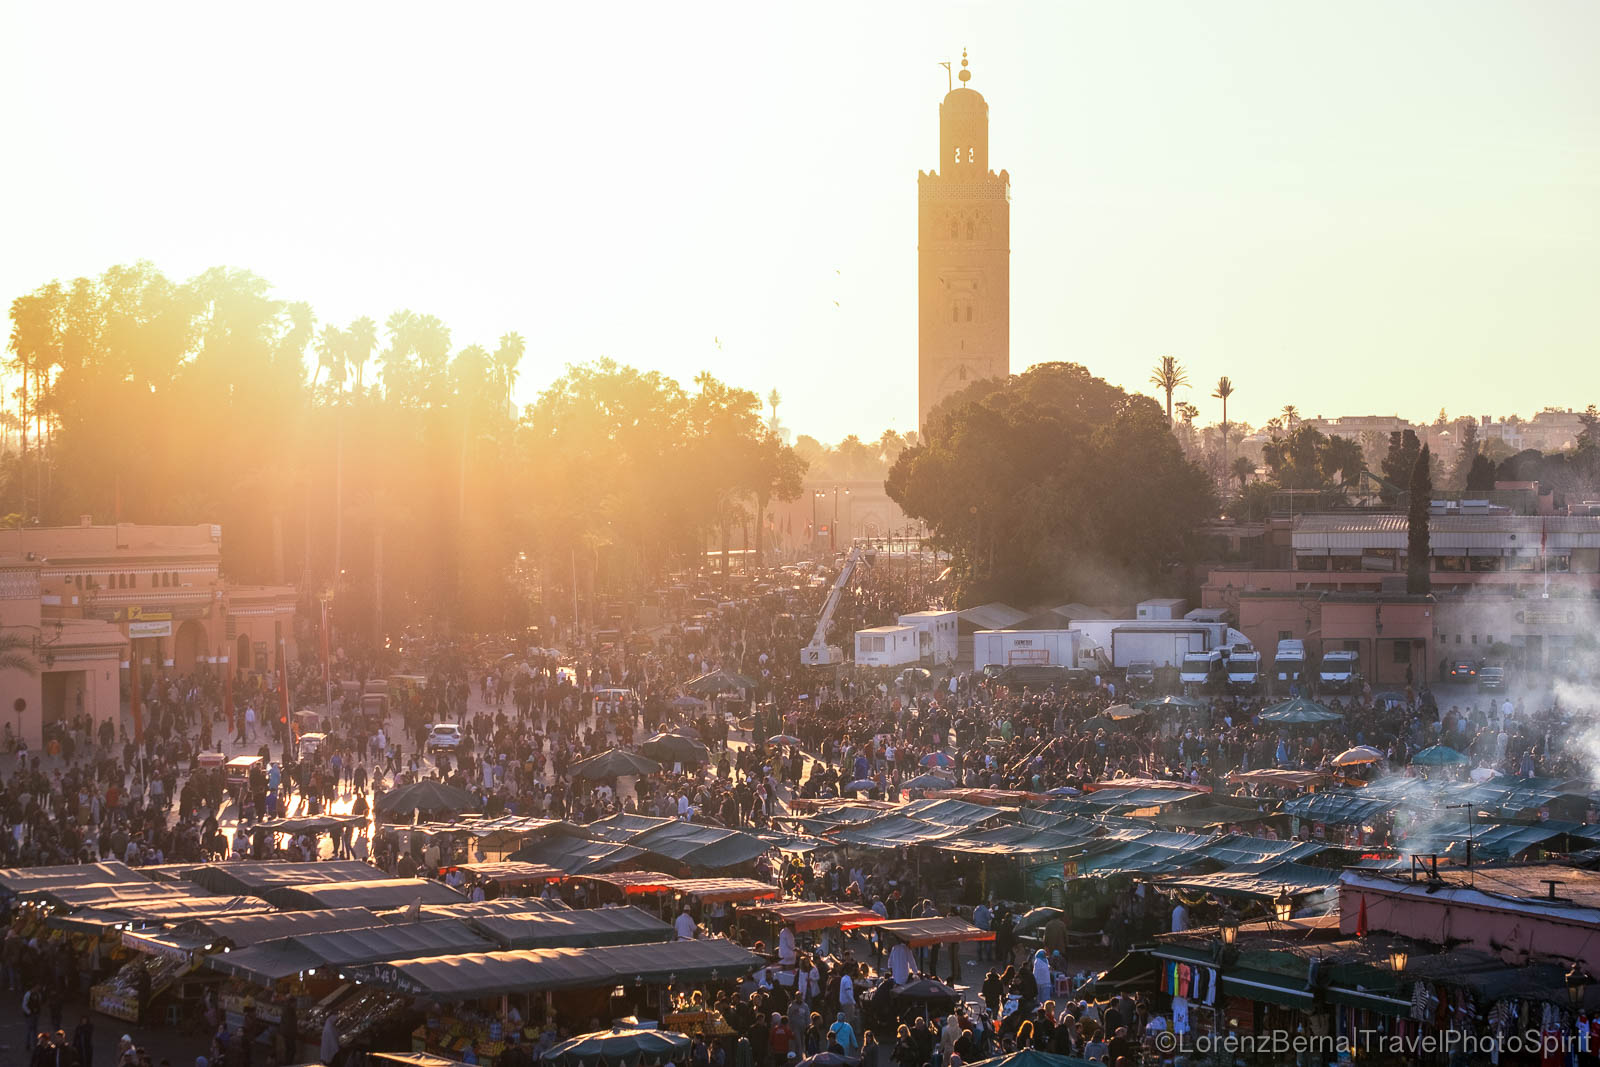 The Djemaa el fna square at sunset, dominated by the minaret of the Koutoubia Mosque in Marrakech.